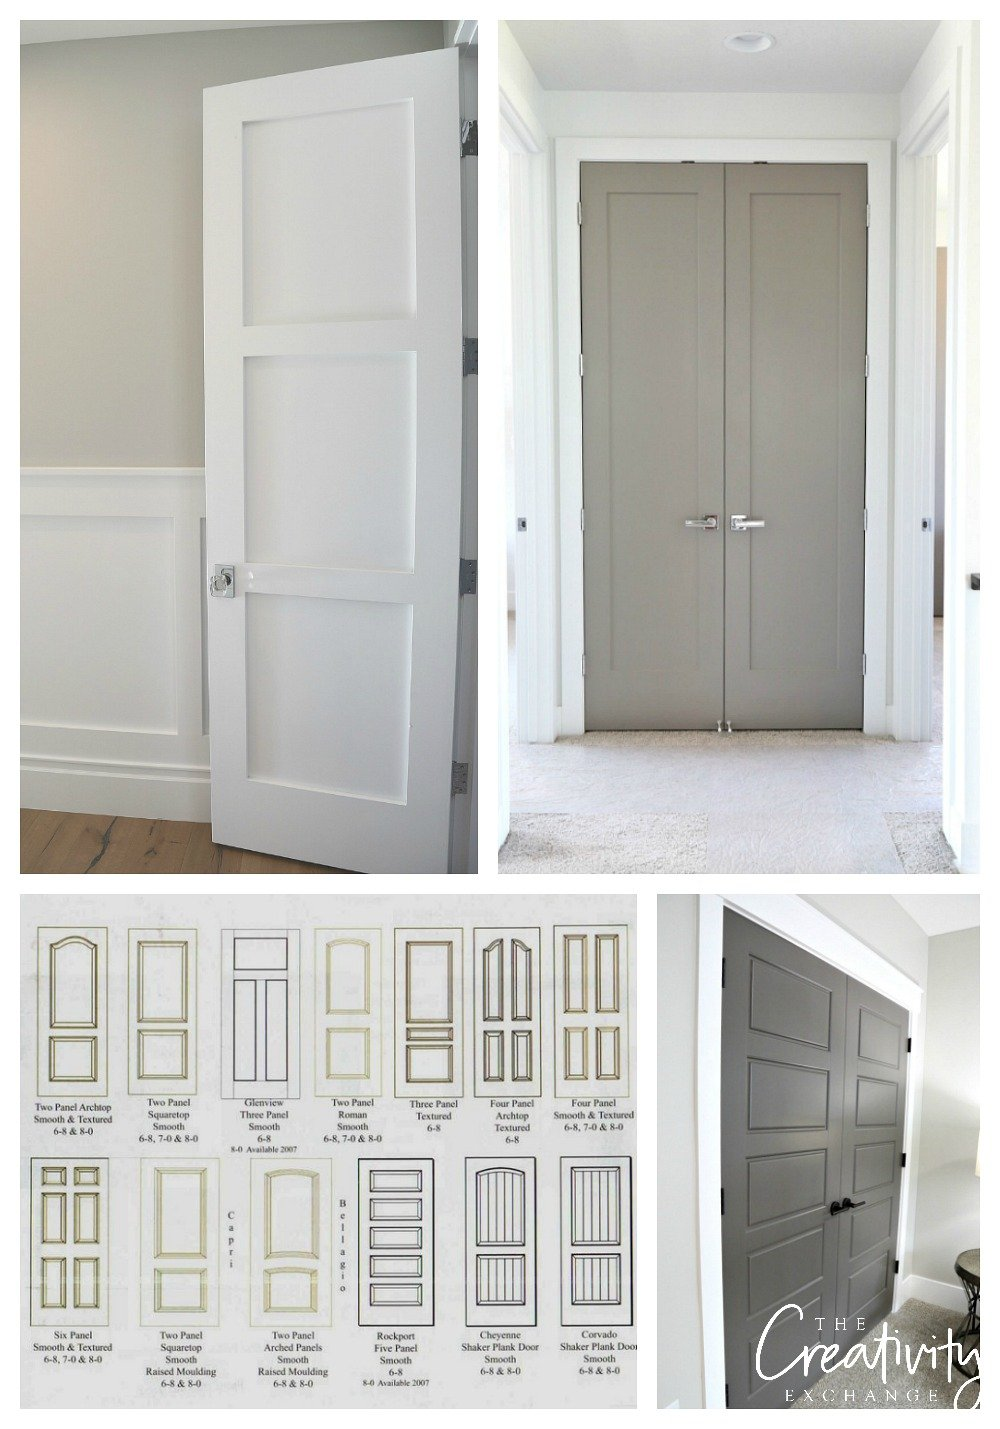 Tips for choosing interior door colors and styles.